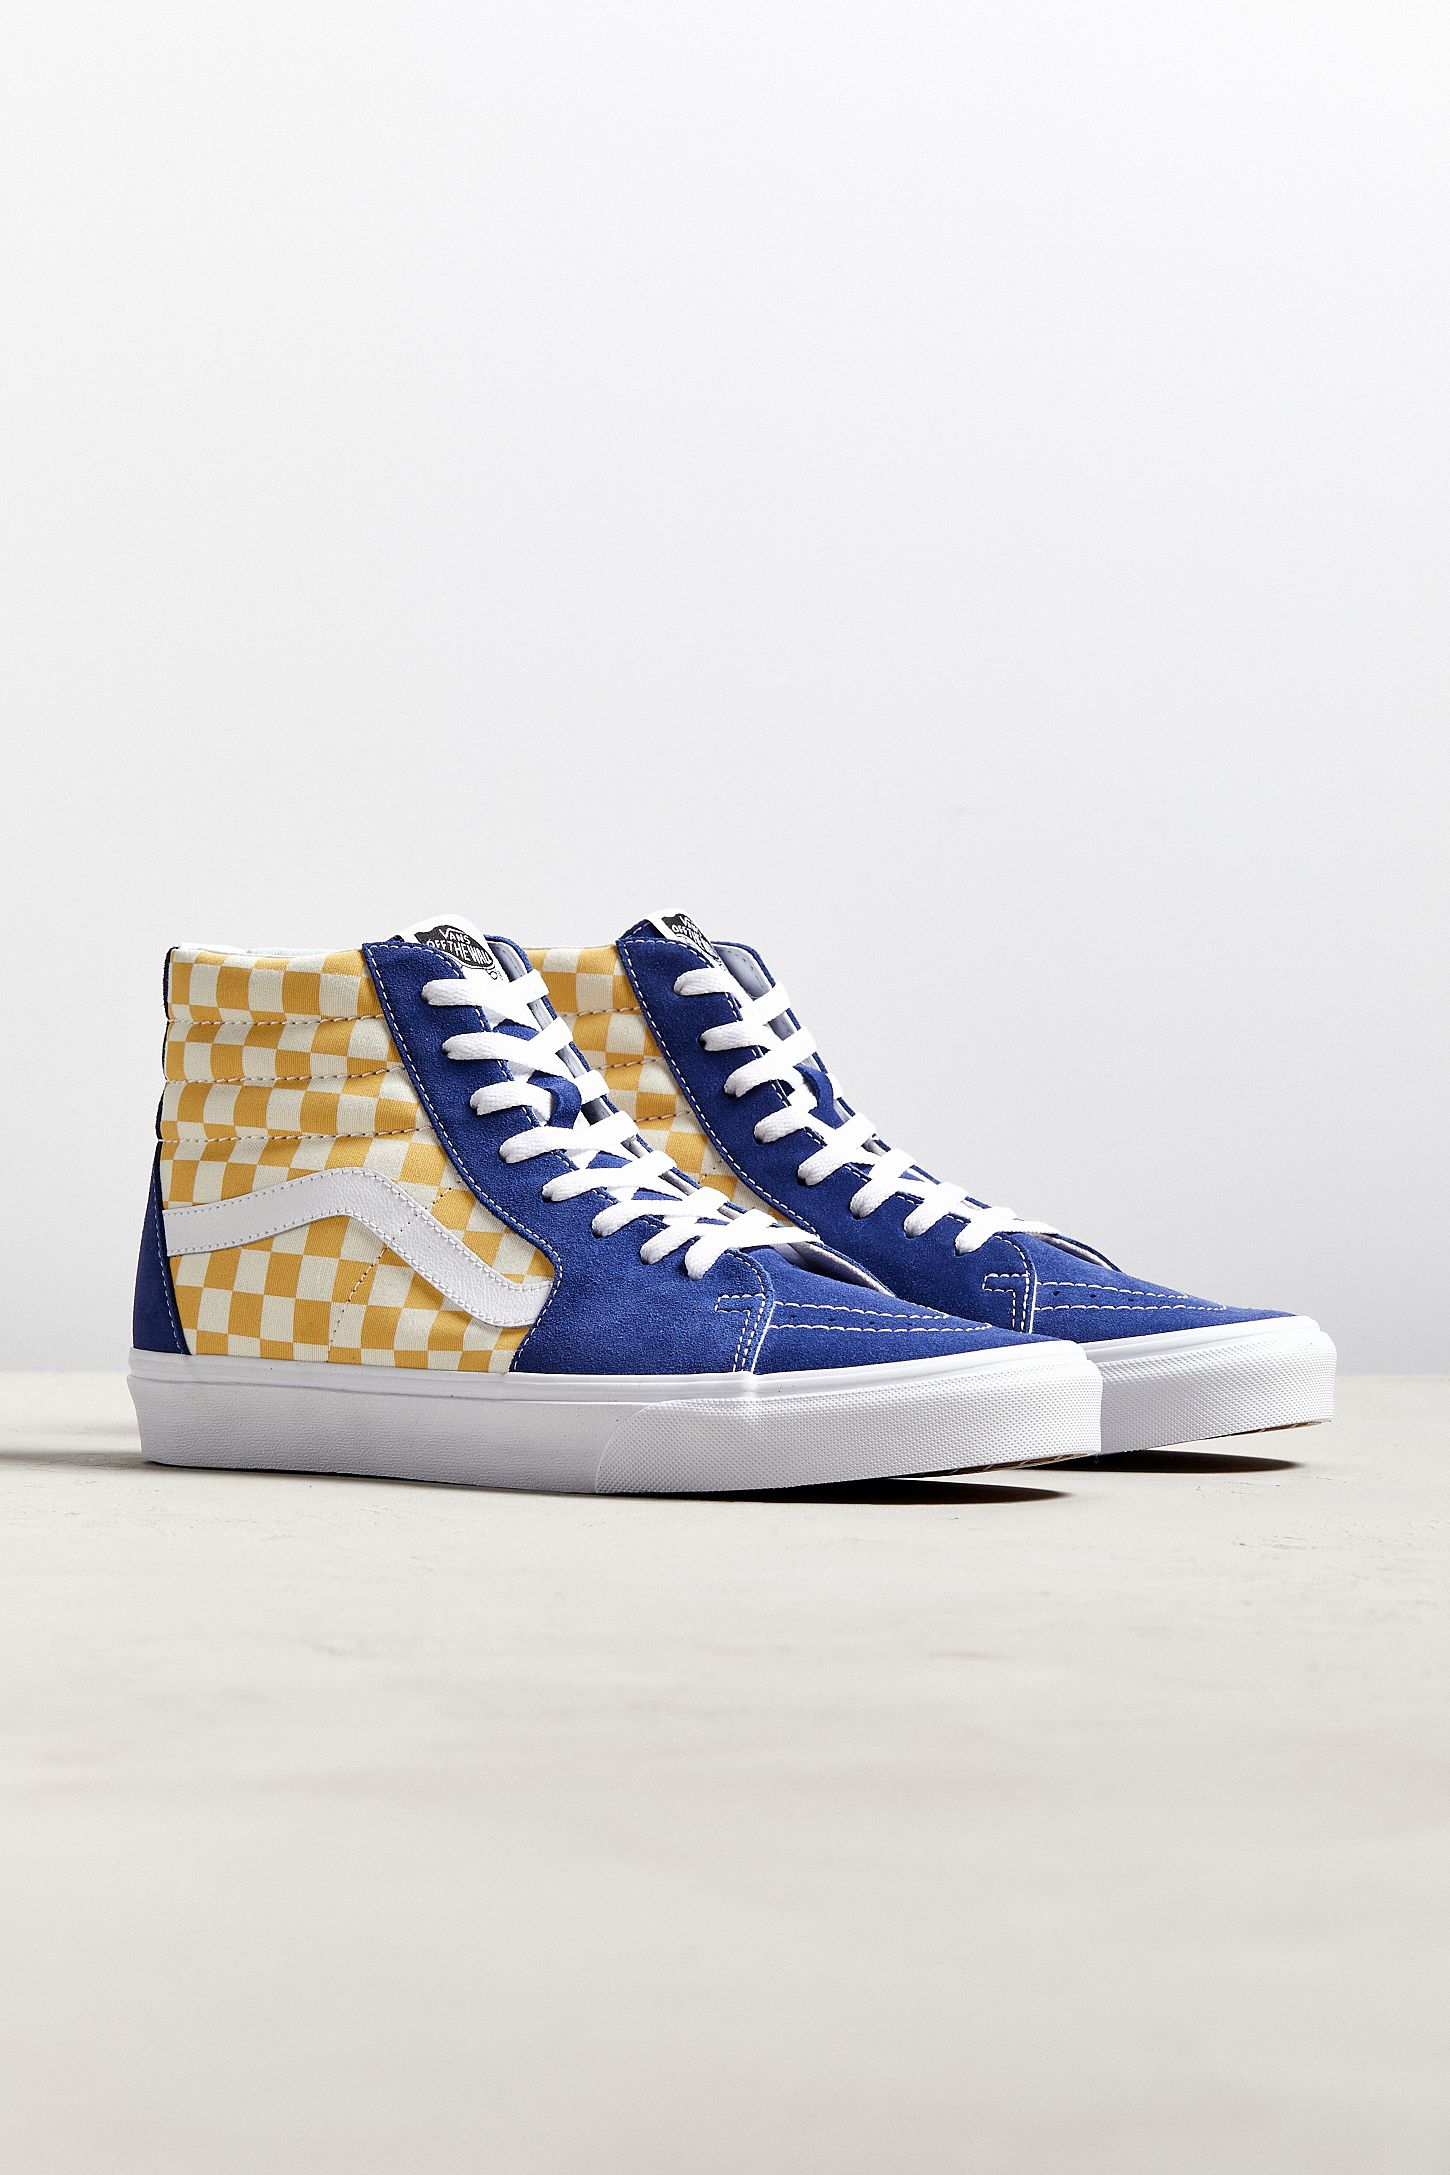 Vans Sk8 Hi BMX Checkerboard Sneaker Urban Outfitters  Urban Outfitters